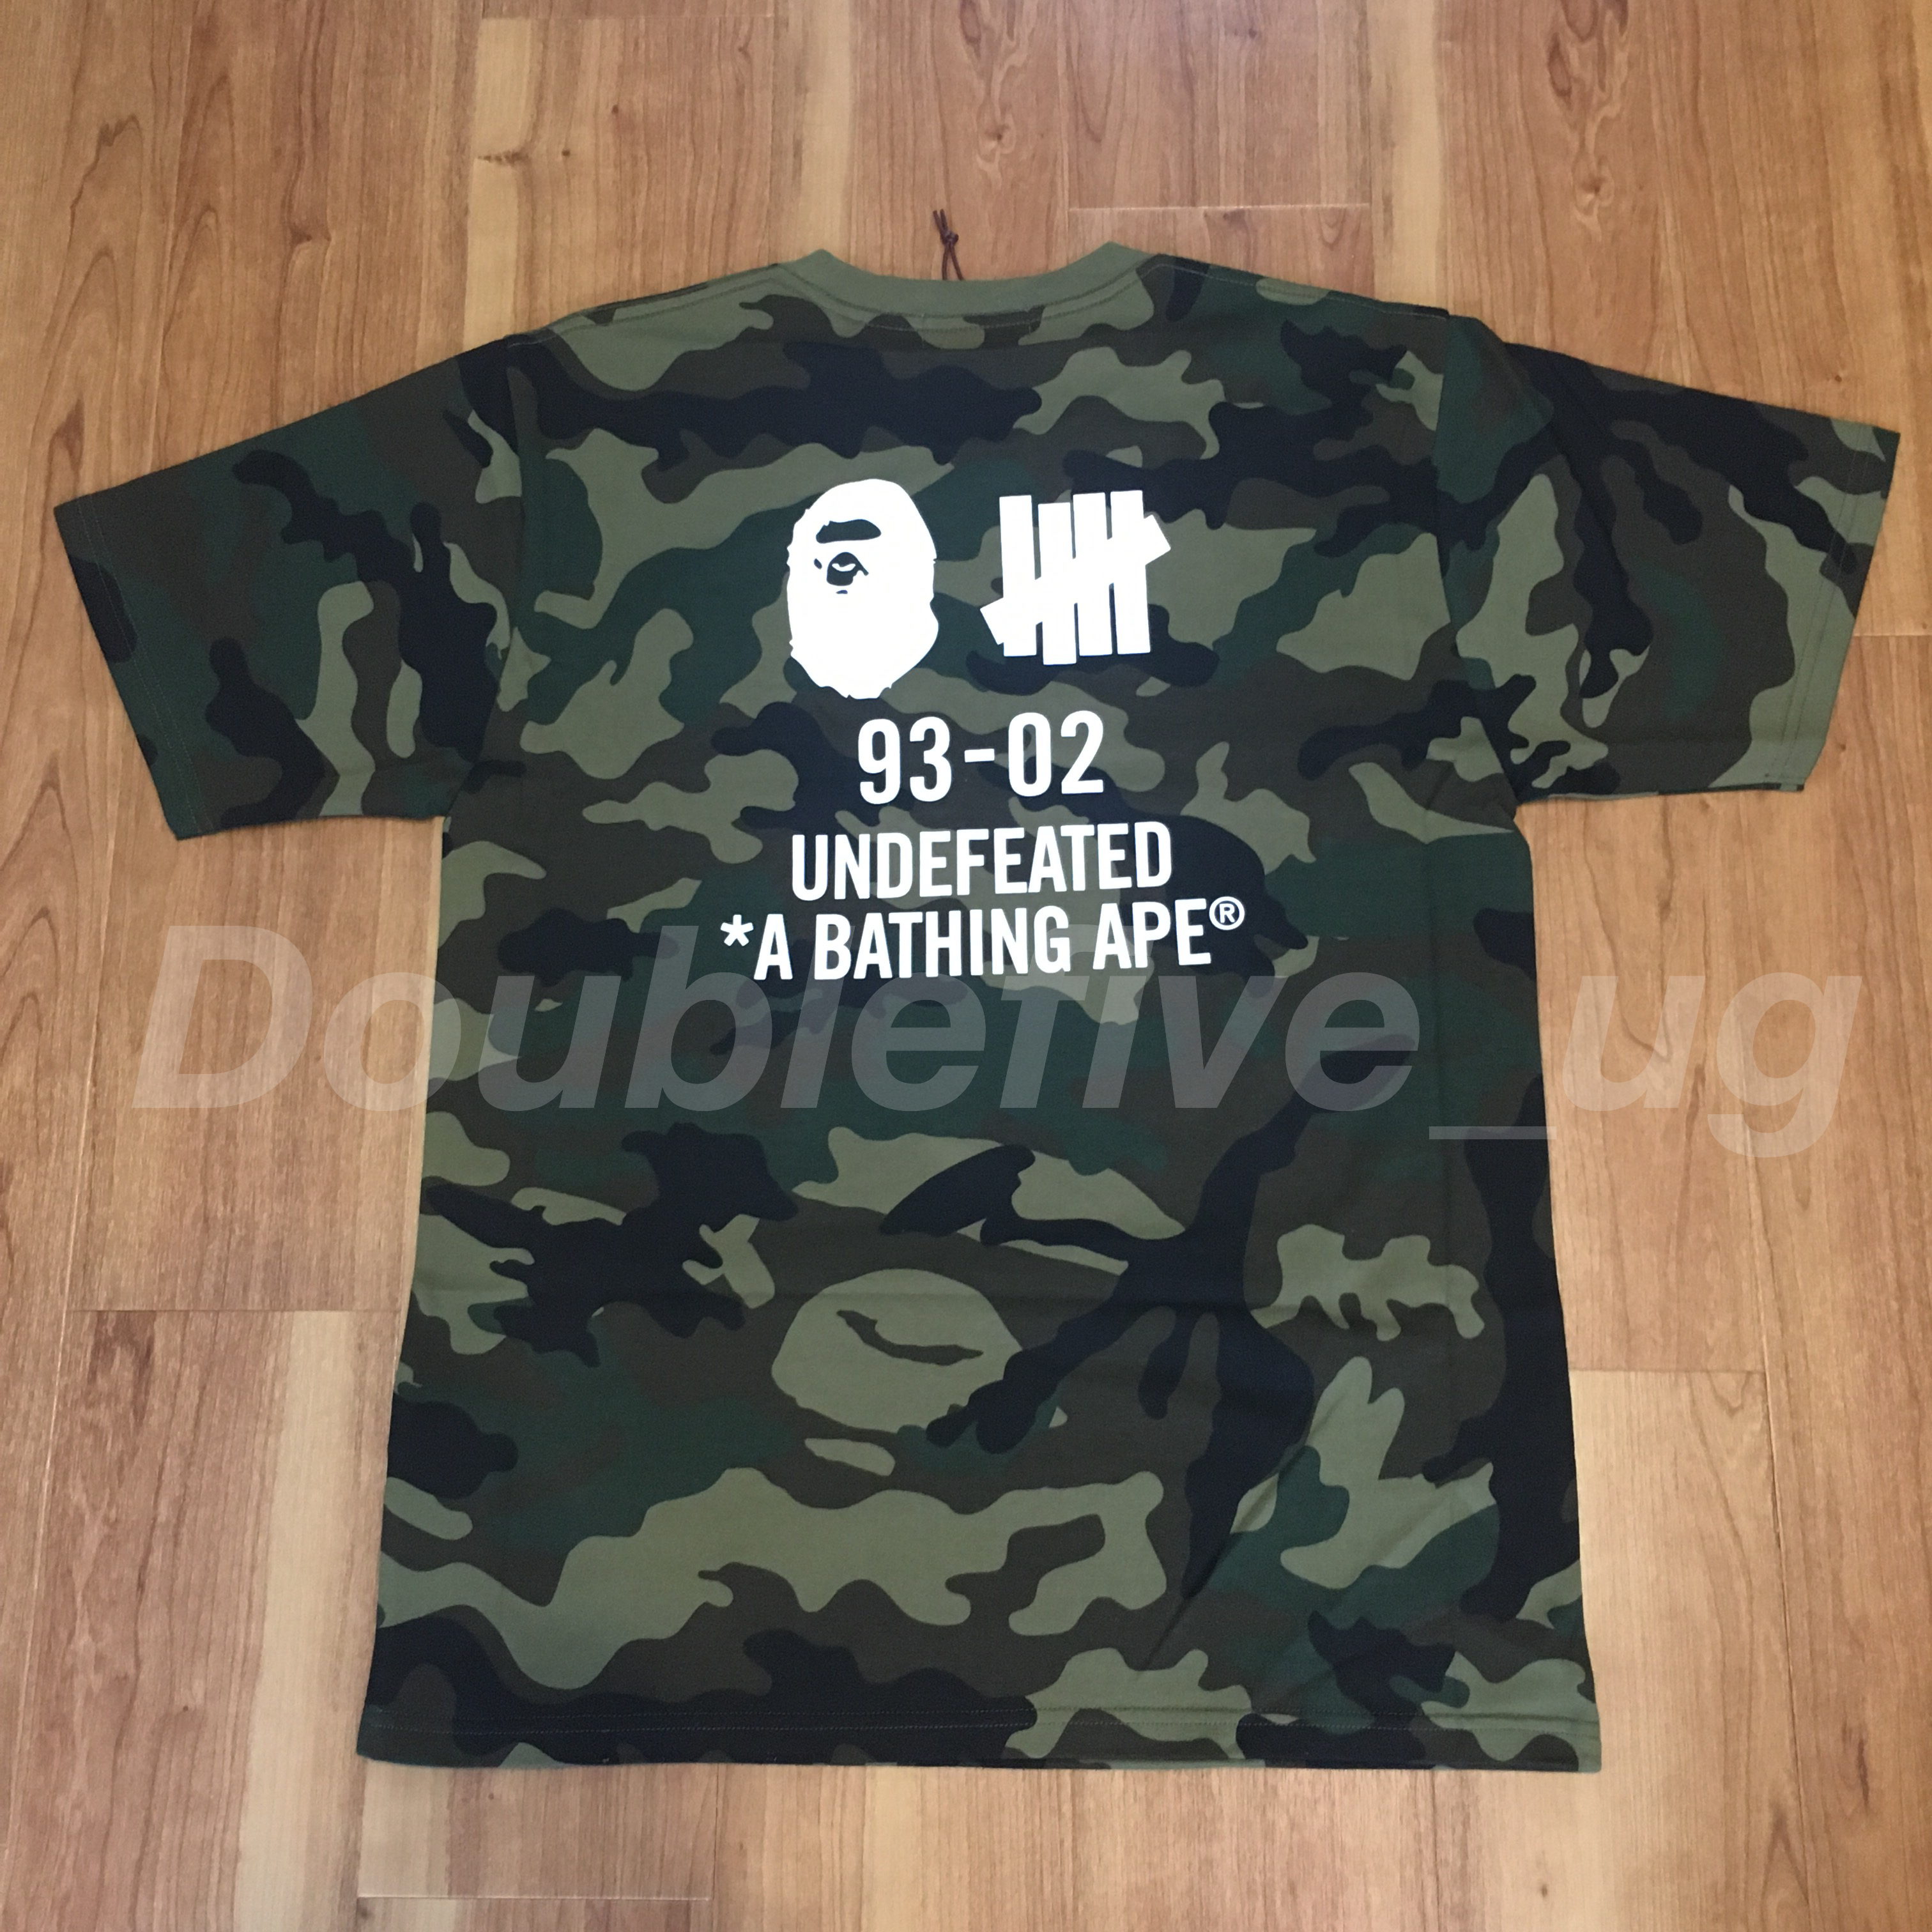 新品未使用 A Bathing Ape Bape x Undefeated Tee カモ L 正規品